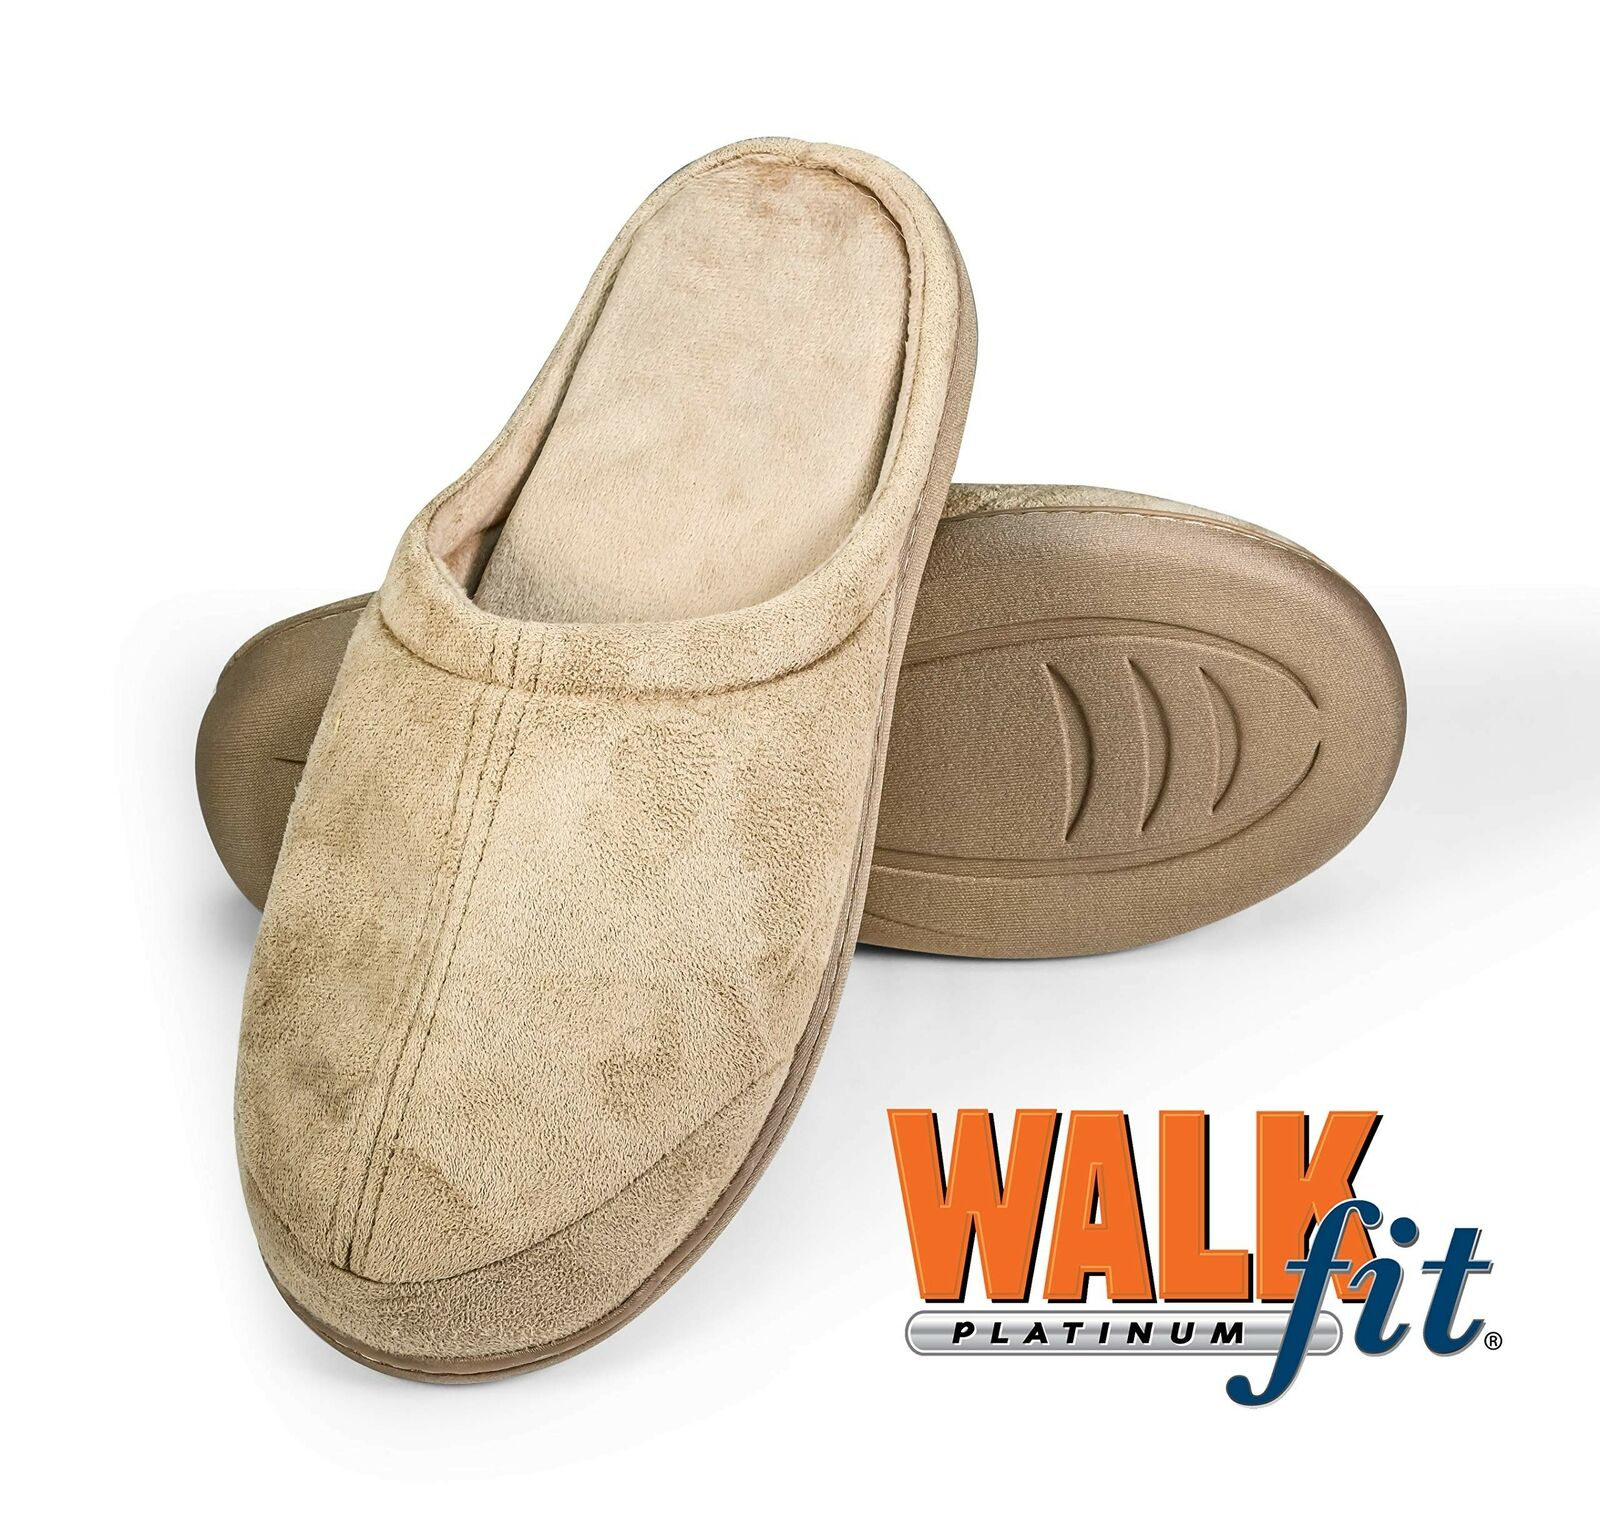 WalkFit Platinum Total Comfort Slippers Women's or Men's House Shoes Memory F...